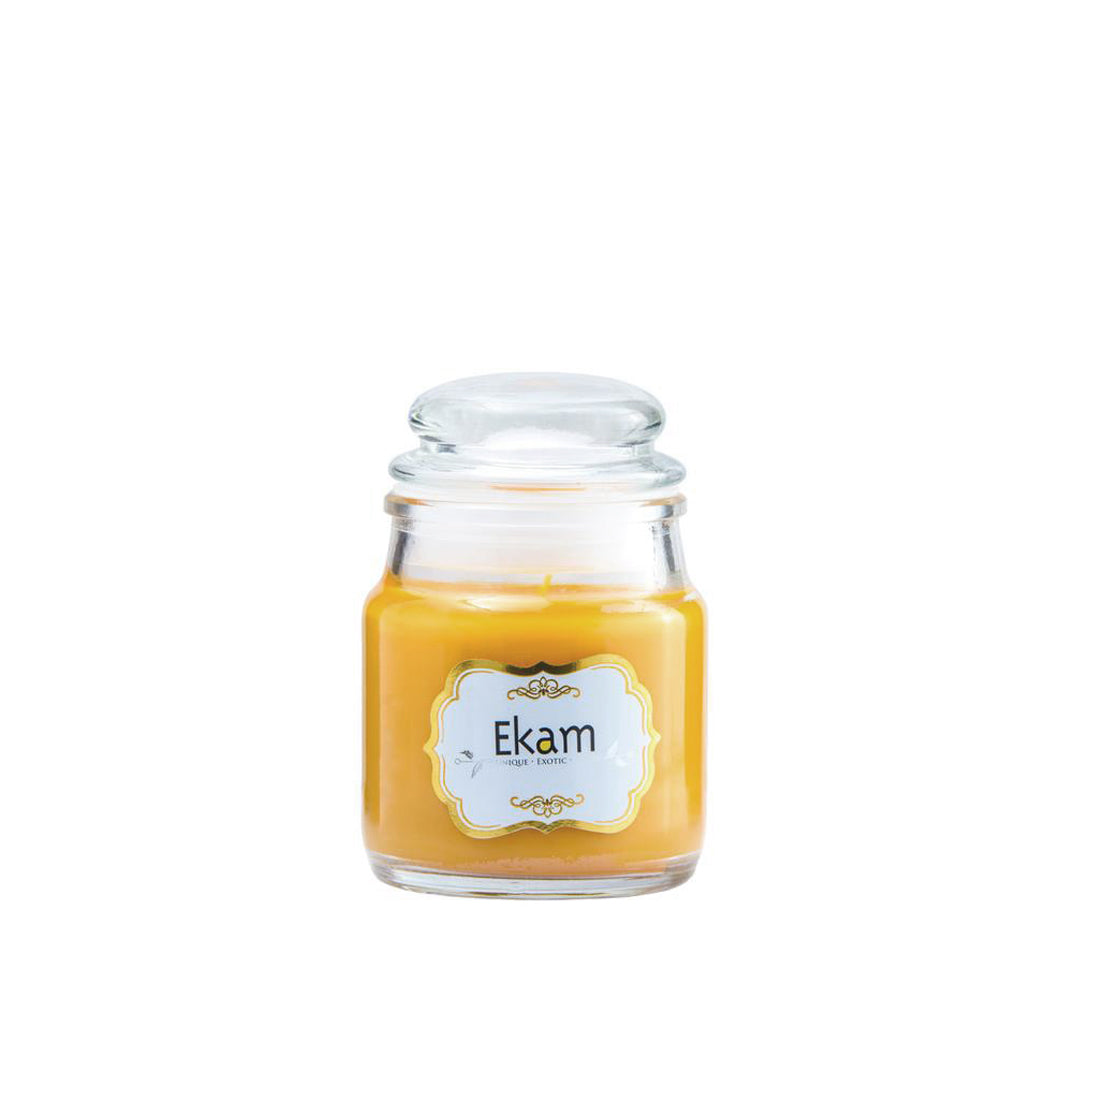 Fruit Splash Scented Candle | Ekam Jar candles